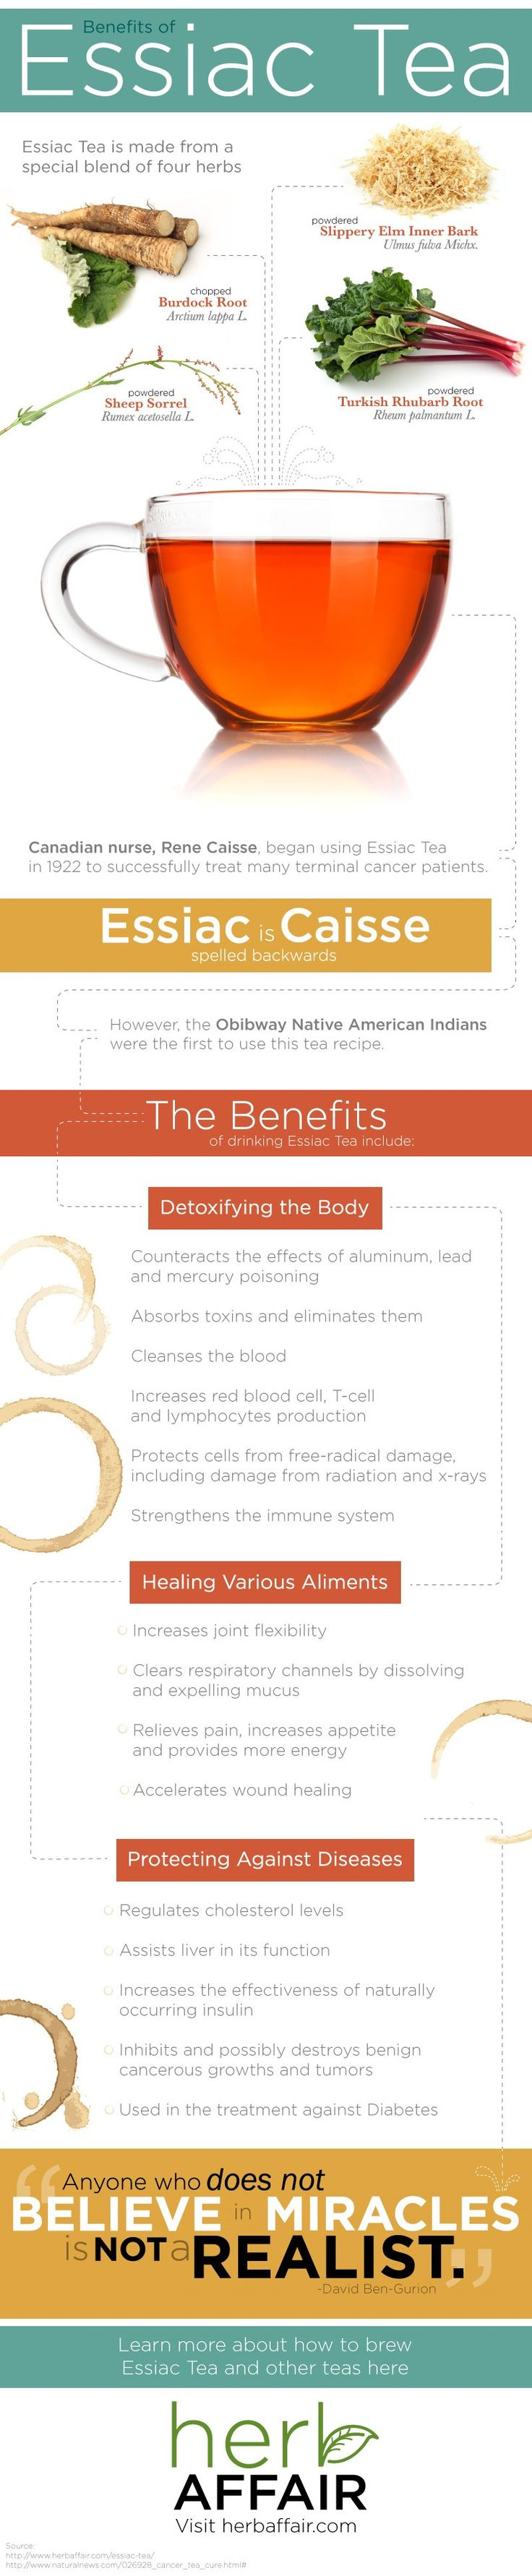 The Benefits of Essiac Tea (Infographic) Learn the many benefits of drinking this herbal tea by reading the infographic.